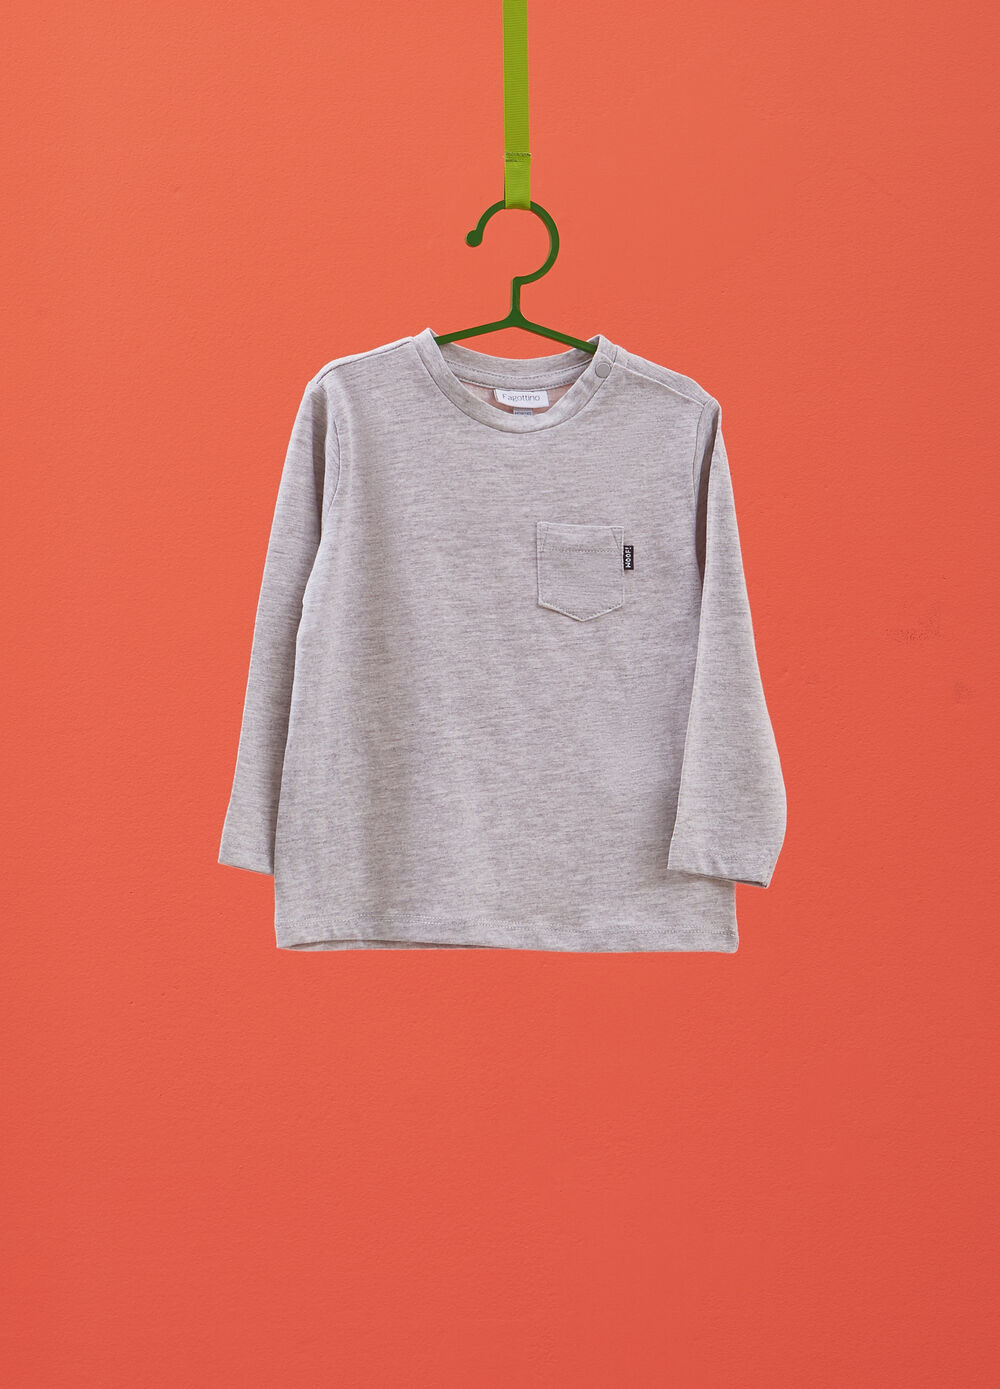 Viscose and cotton T-shirt with pocket